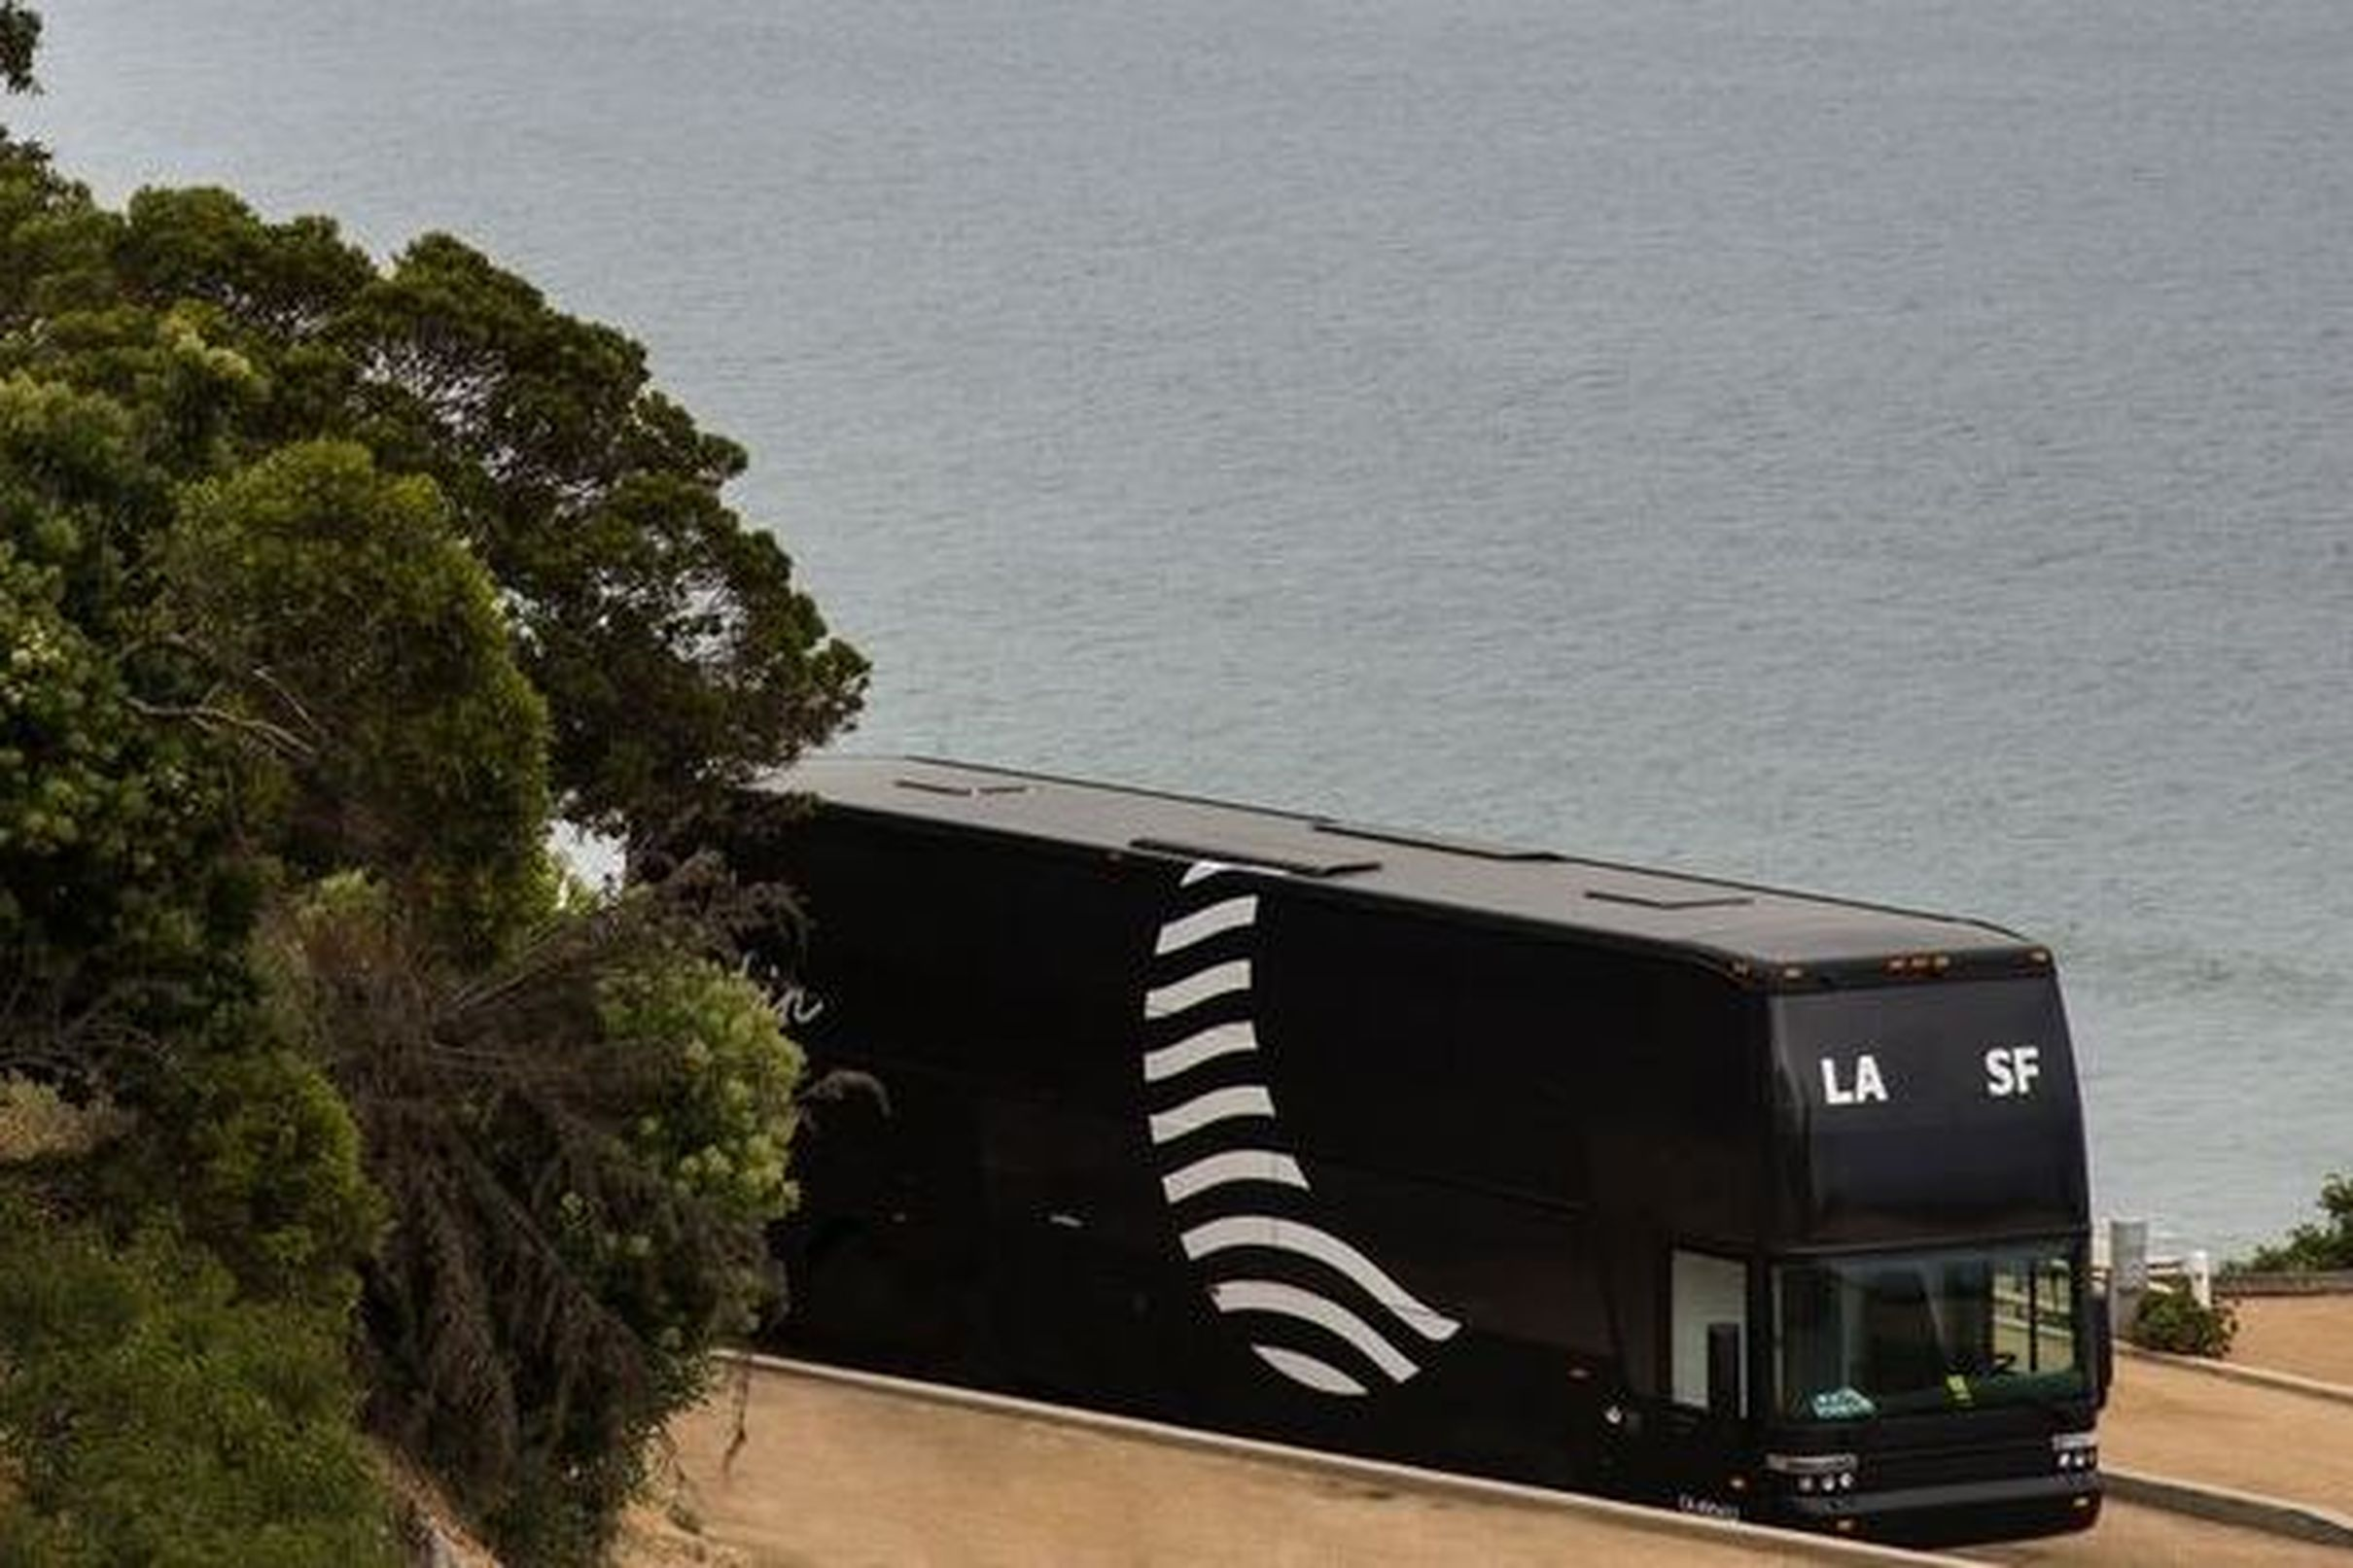 Sleep pod buses between la and sf rolling out this month